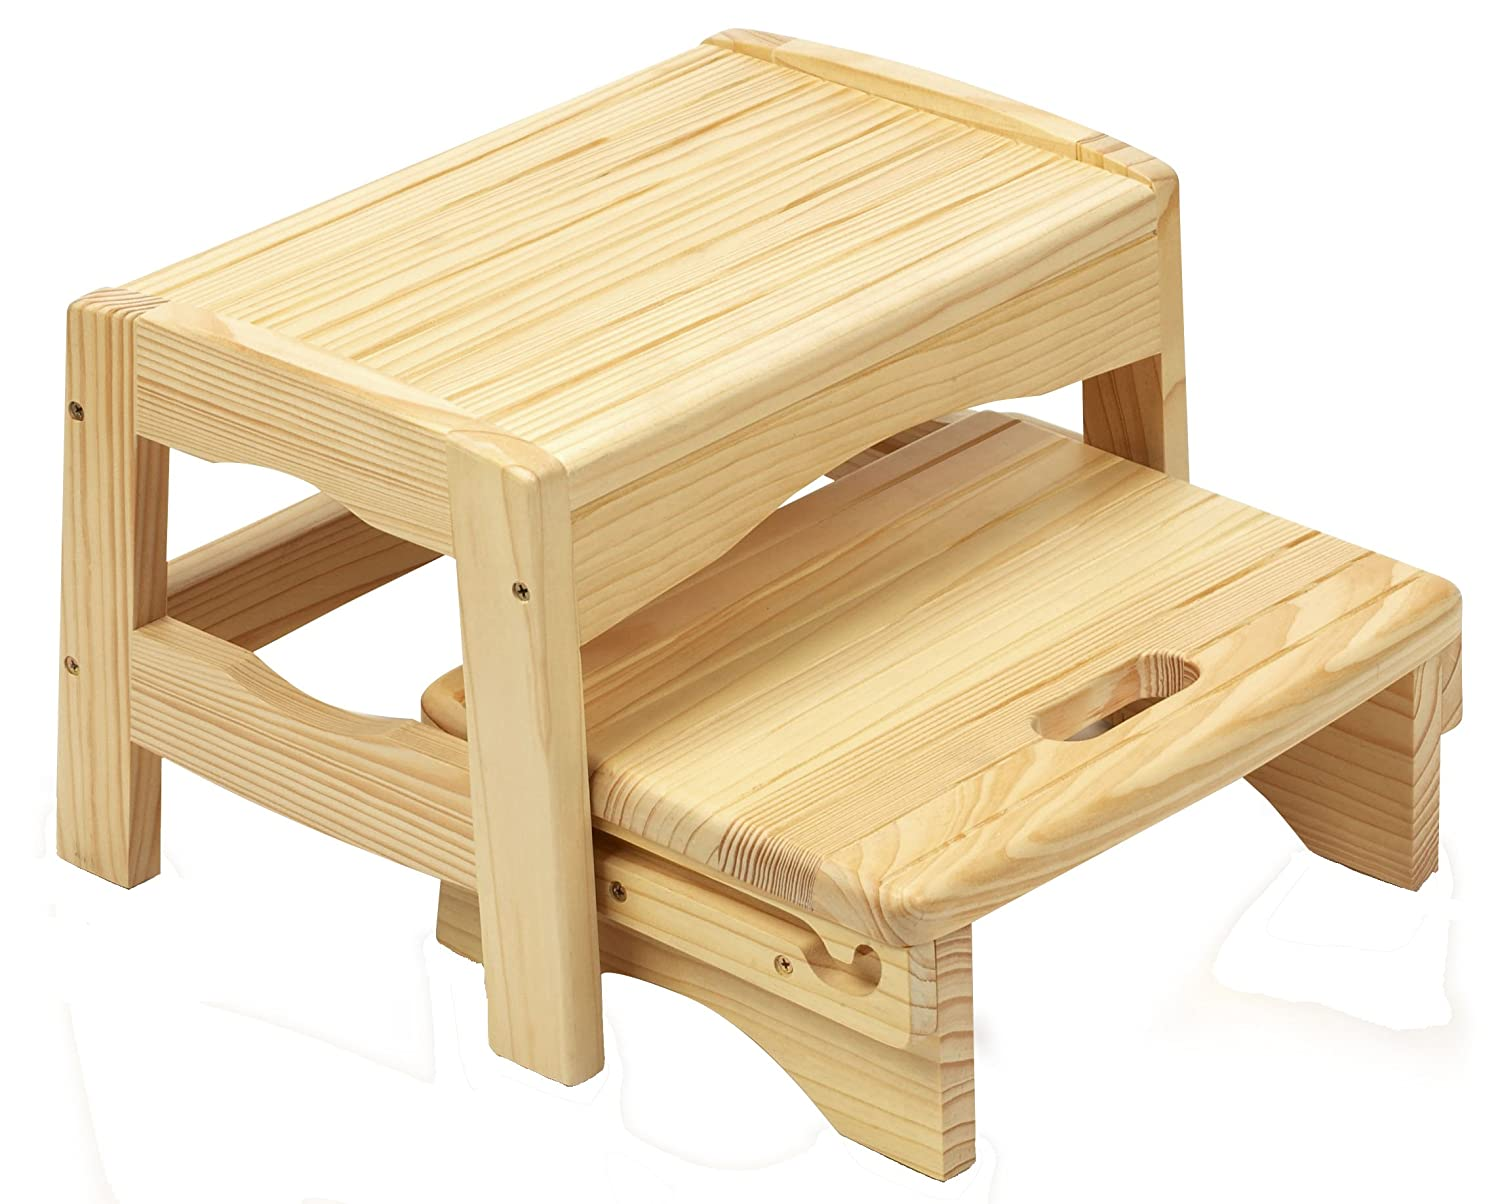 Amazon.com  Safety 1st Wooden Two Step Stool  Toilet Training Step Stools  Baby  sc 1 st  Amazon.com : 2 step wooden step stool - islam-shia.org